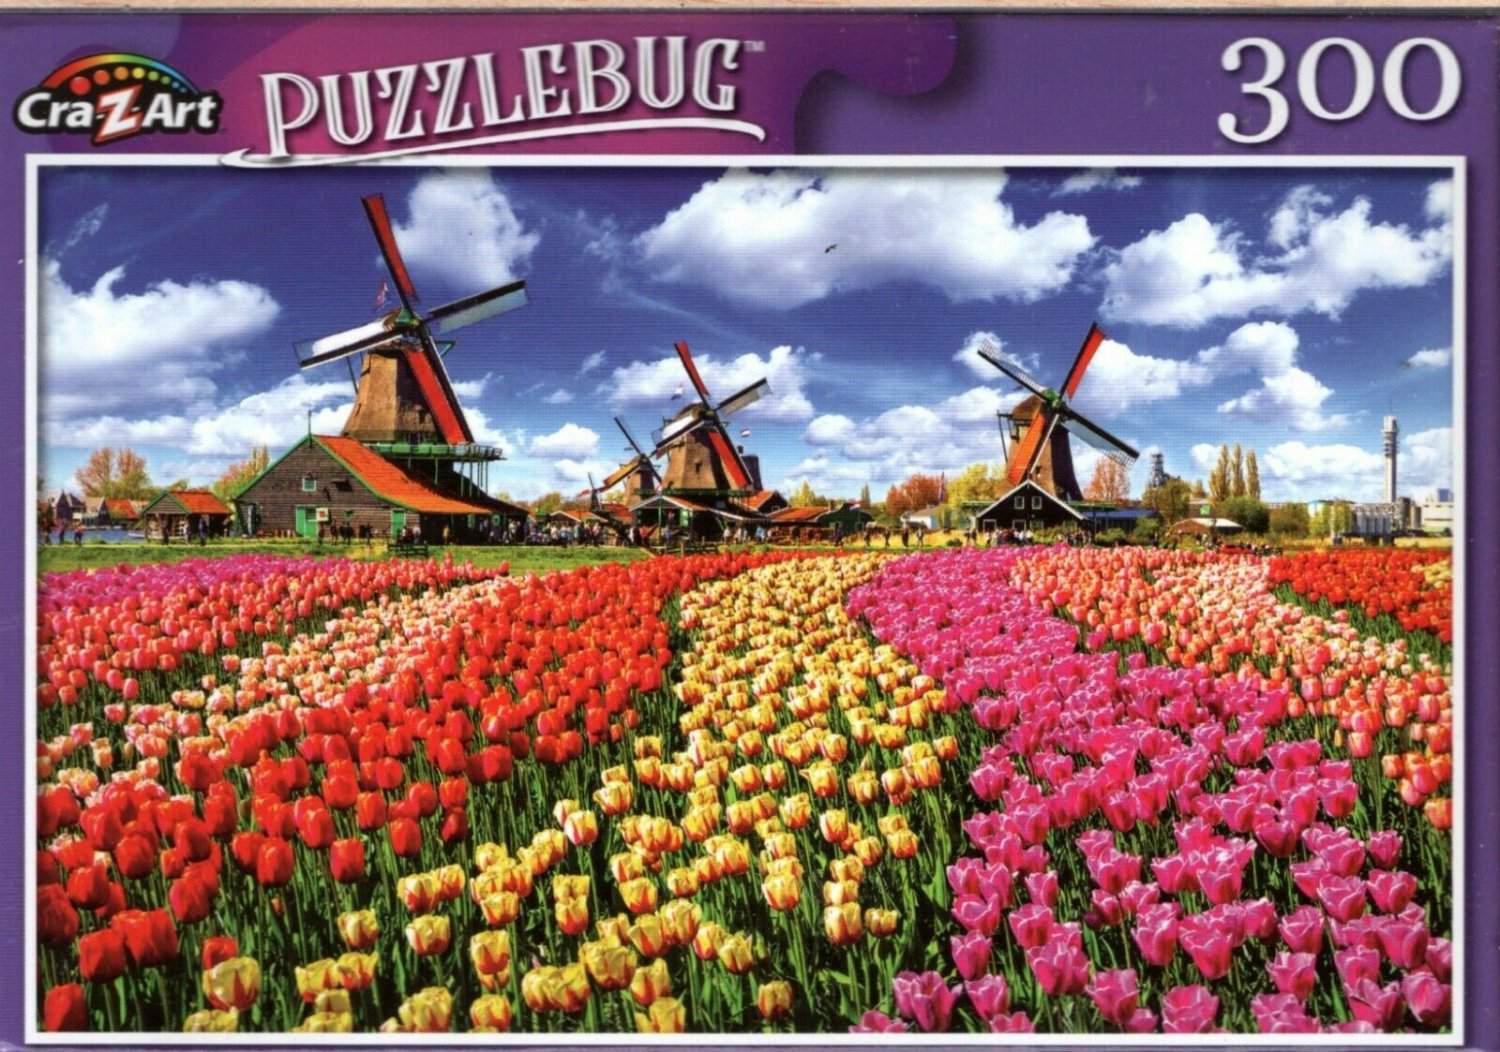 Traditional Dutch Windmills with Tulips, Netherlands - 300 Pieces Jigsaw Puzzle